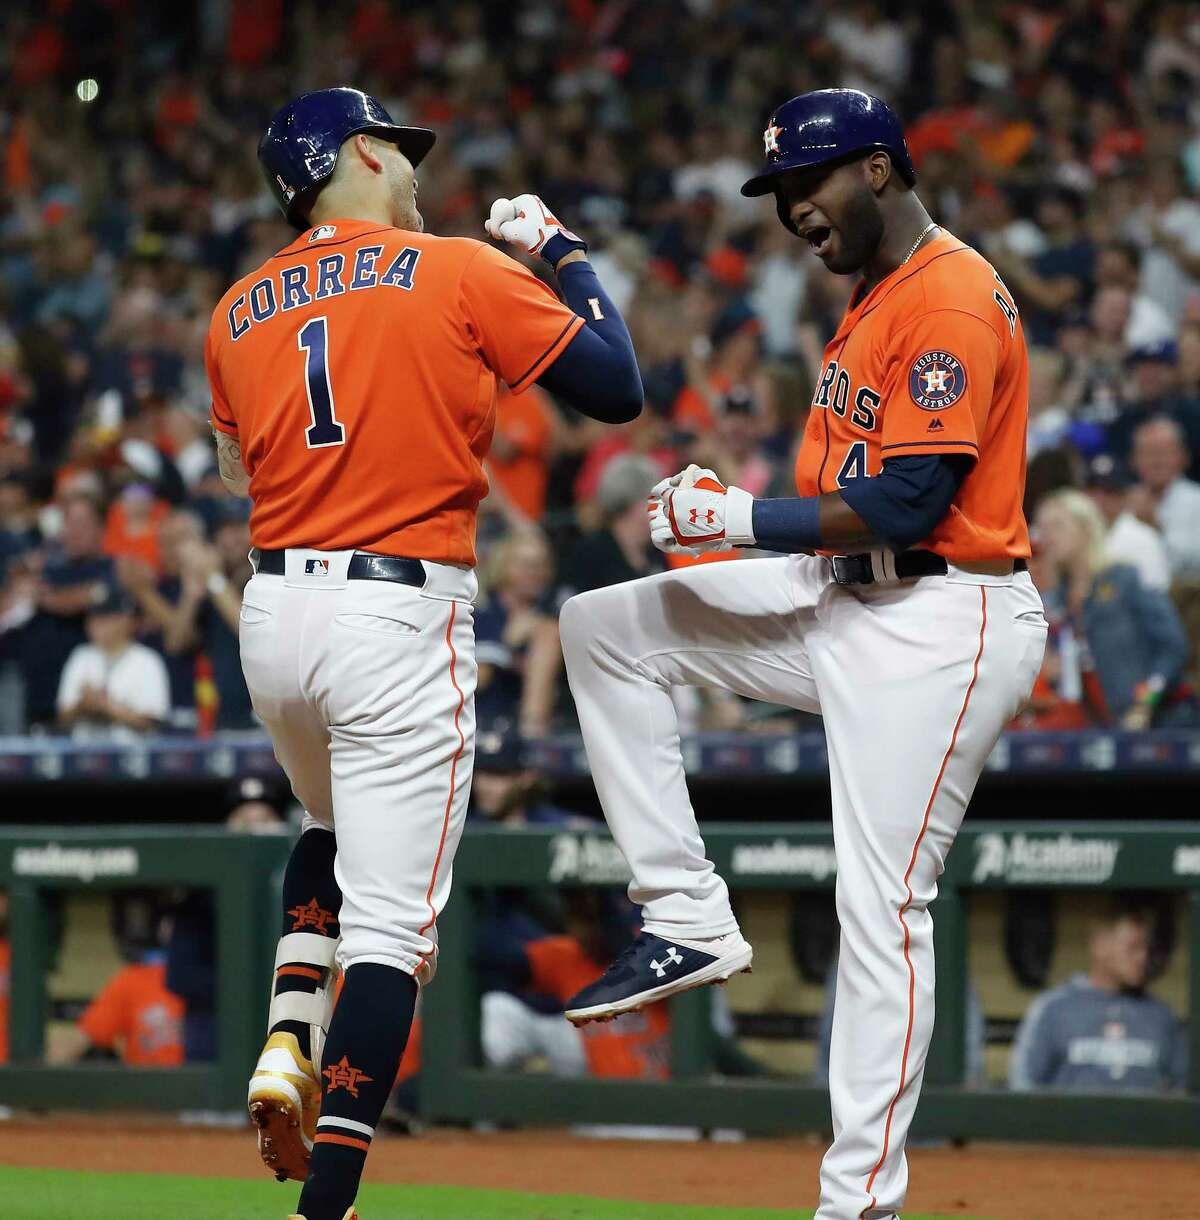 Houston Astros Carlos Correa (1) celebrates his home run with Yordan Alvarez (44) during the first inning of an MLB baseball game at Minute Maid Park, Friday, Sept. 20, 2019, in Houston.